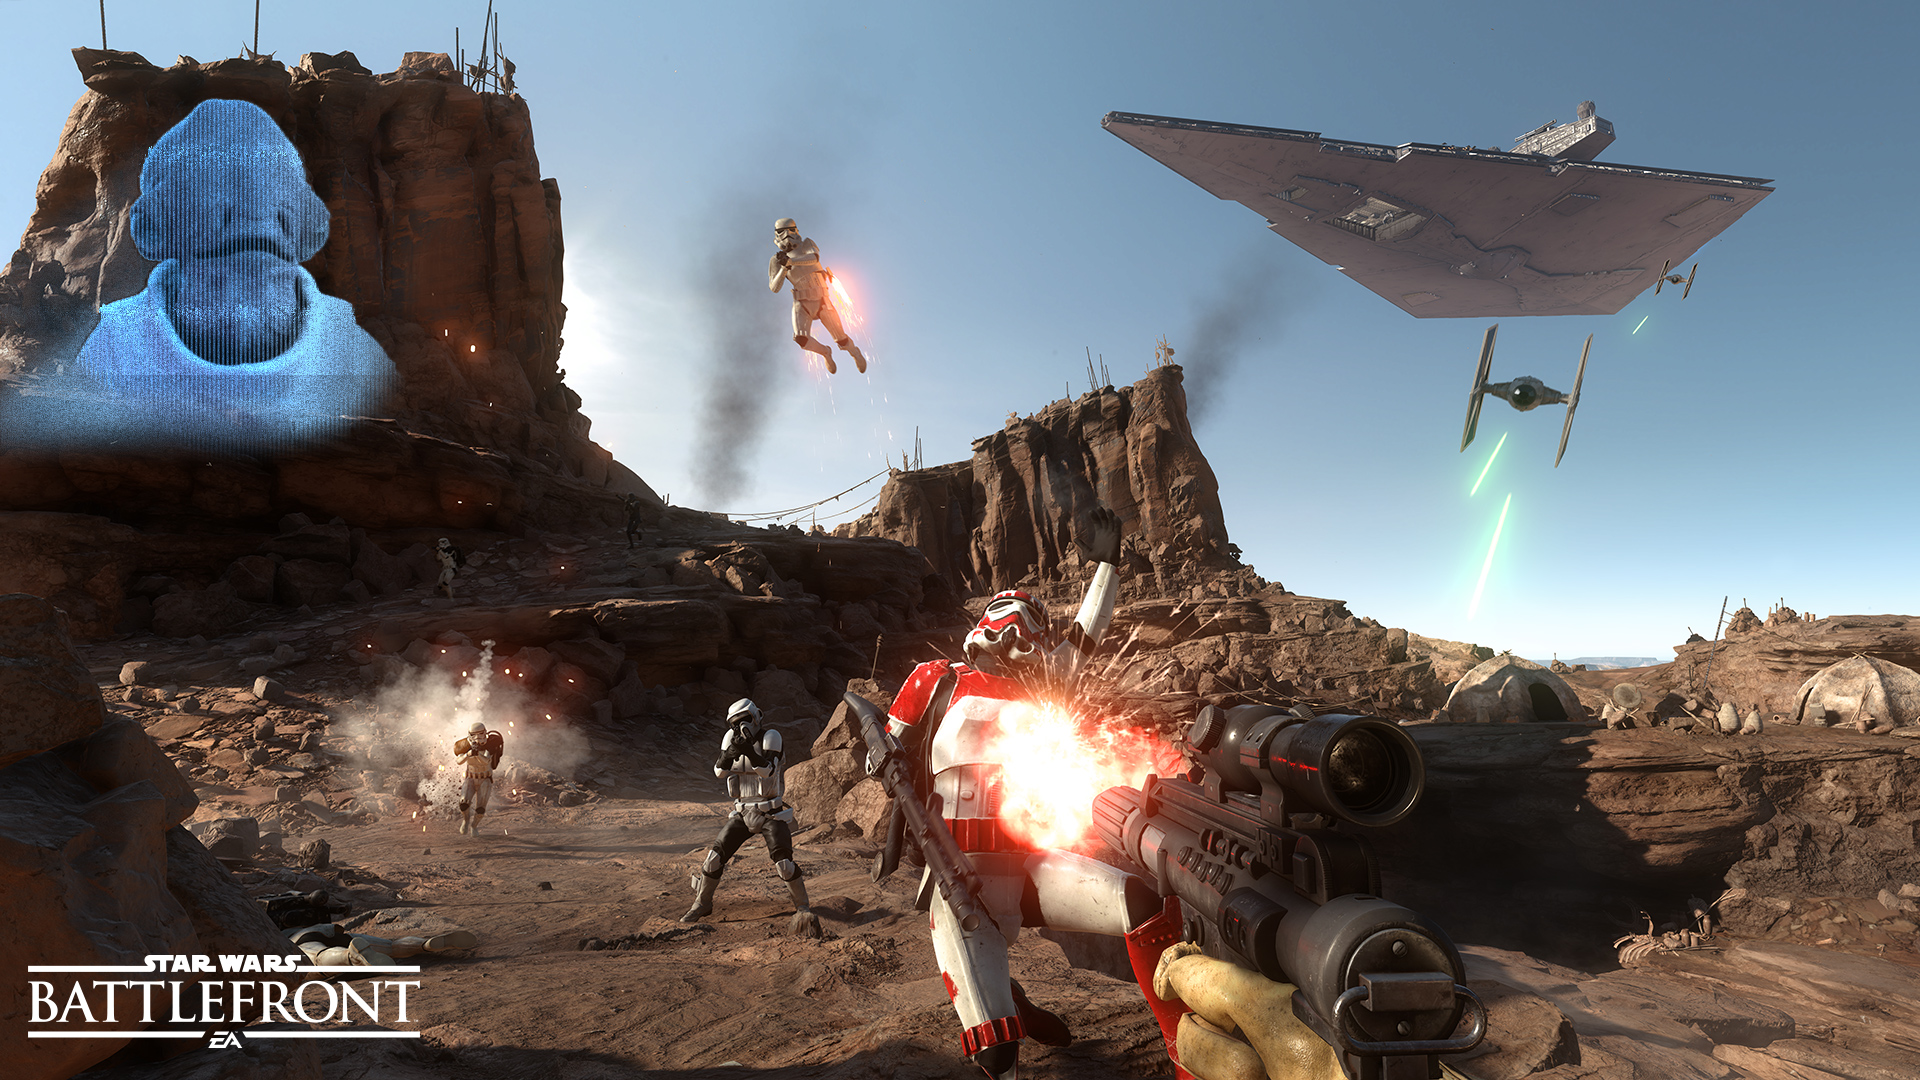 2916877-star_wars_battlefront_e3_screen_2___survival_mission_tatooine_wm